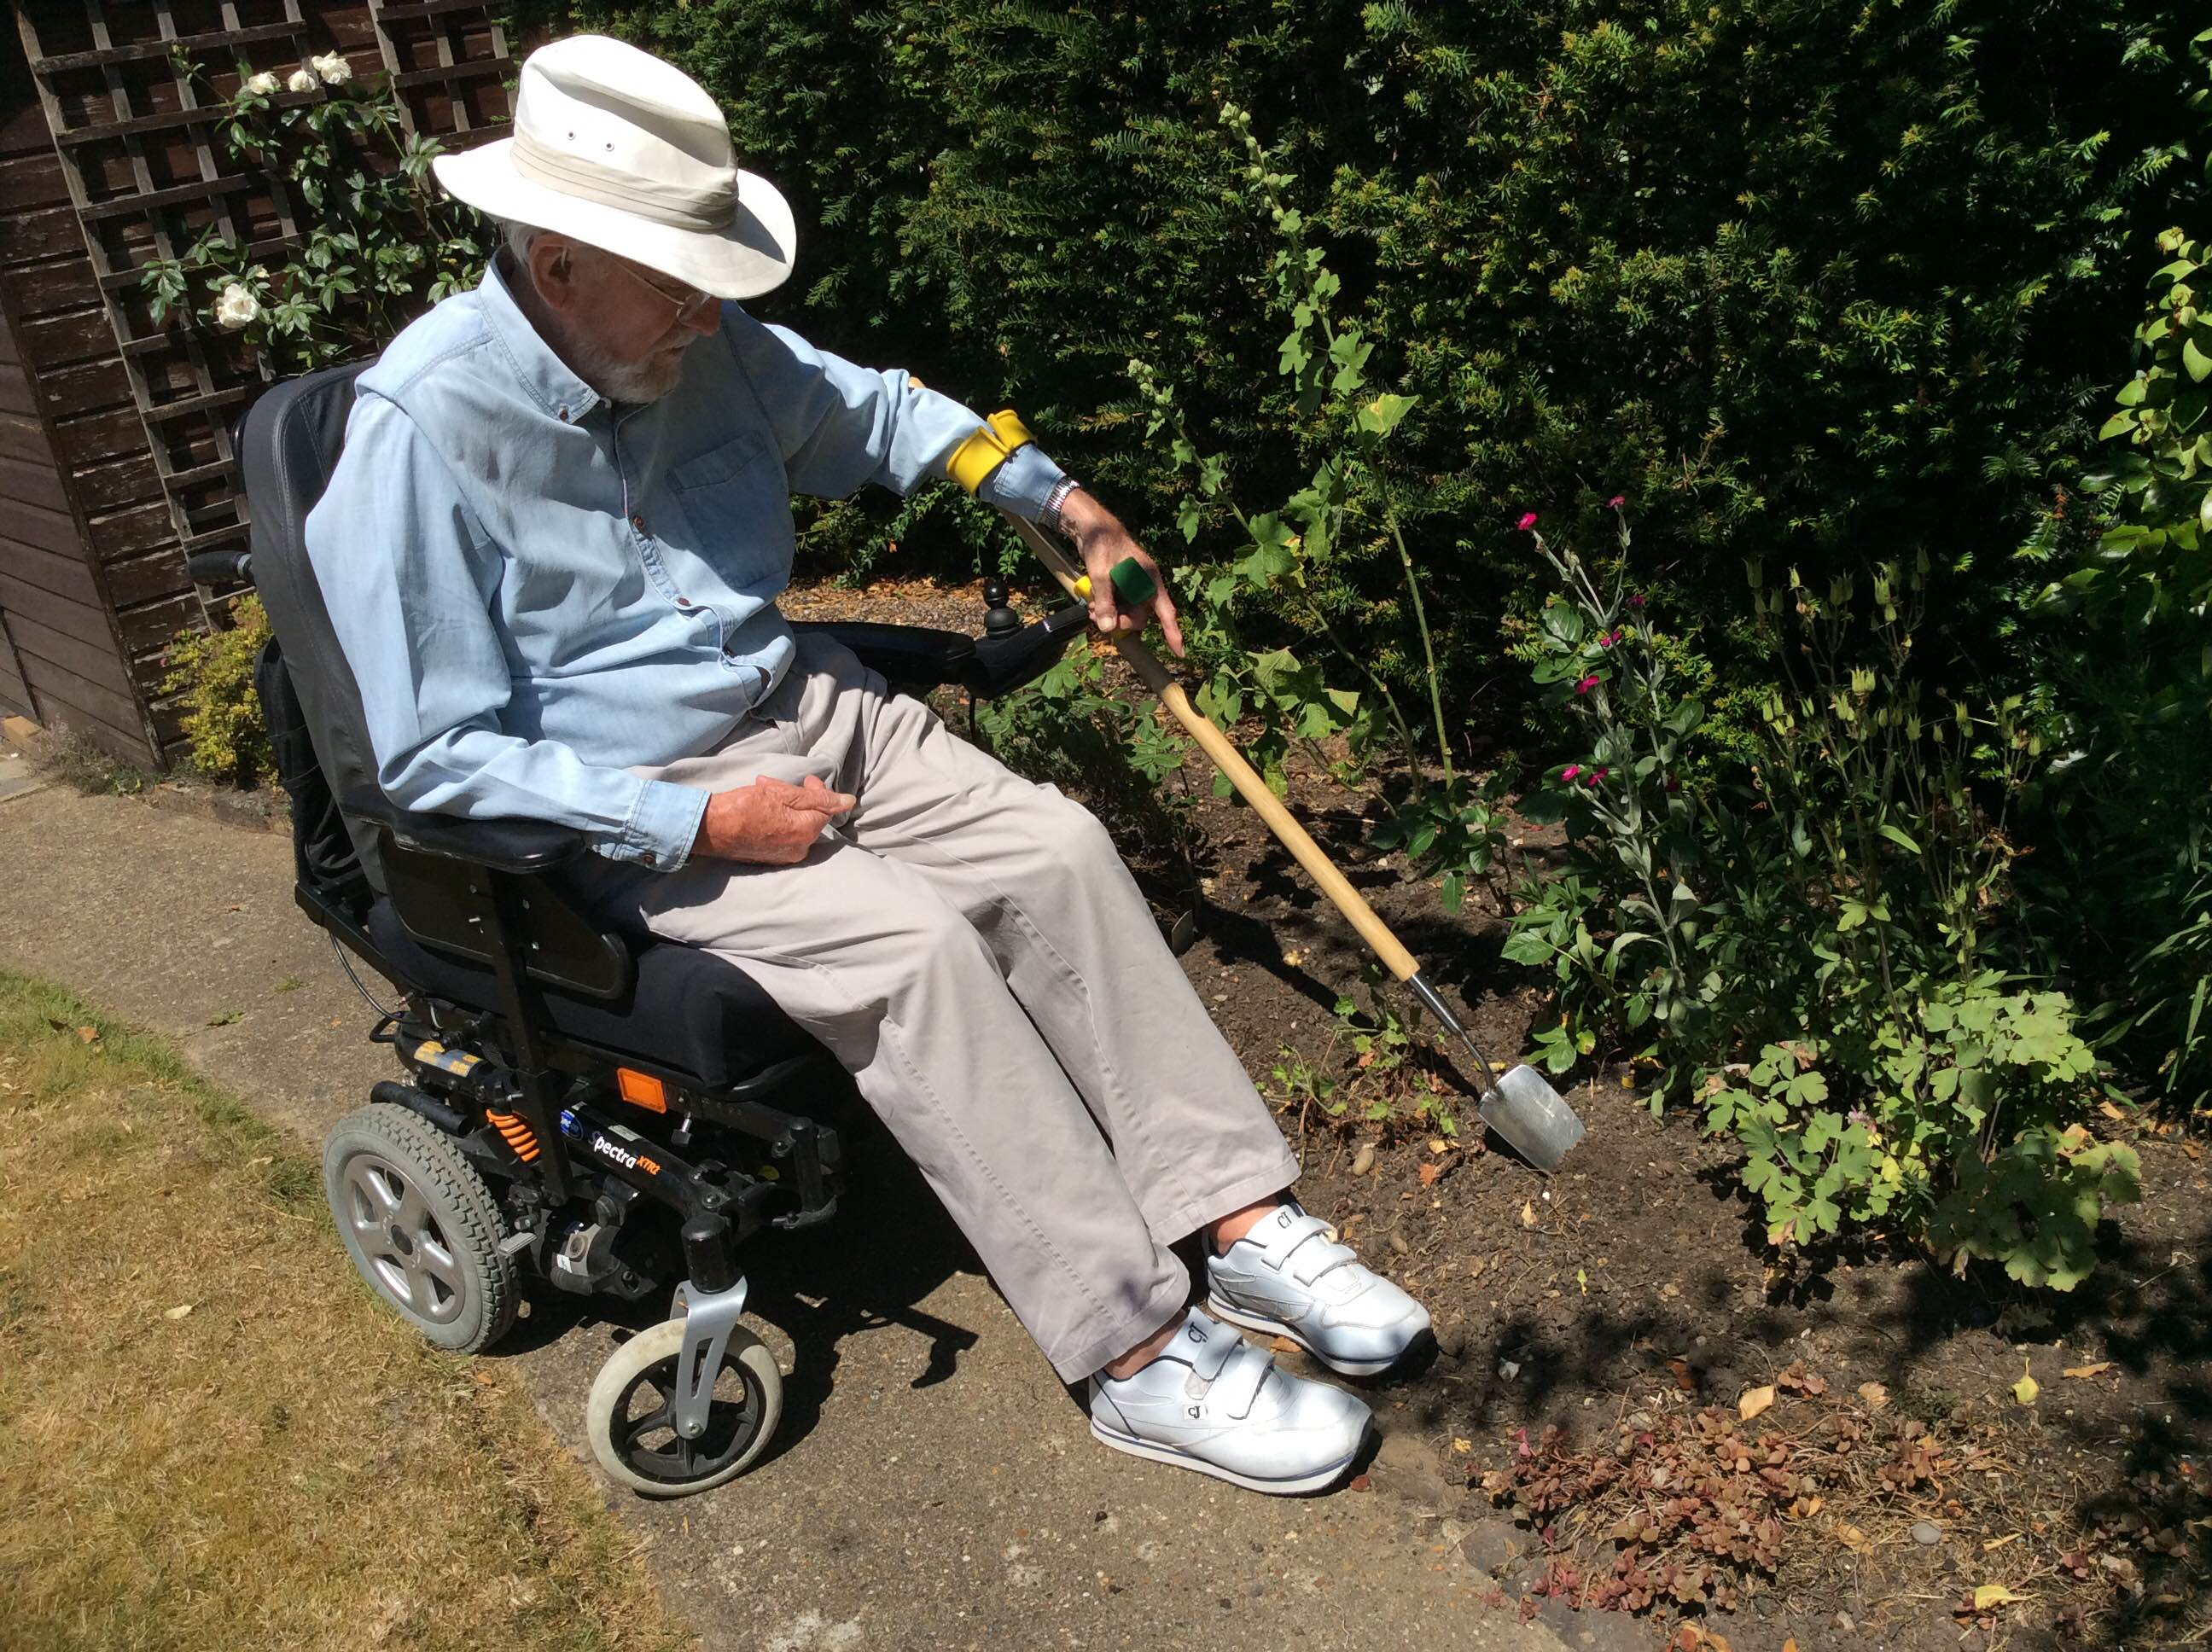 Add On Handles And Arm Support Help John To Garden Again Peta Uk Easi Grip